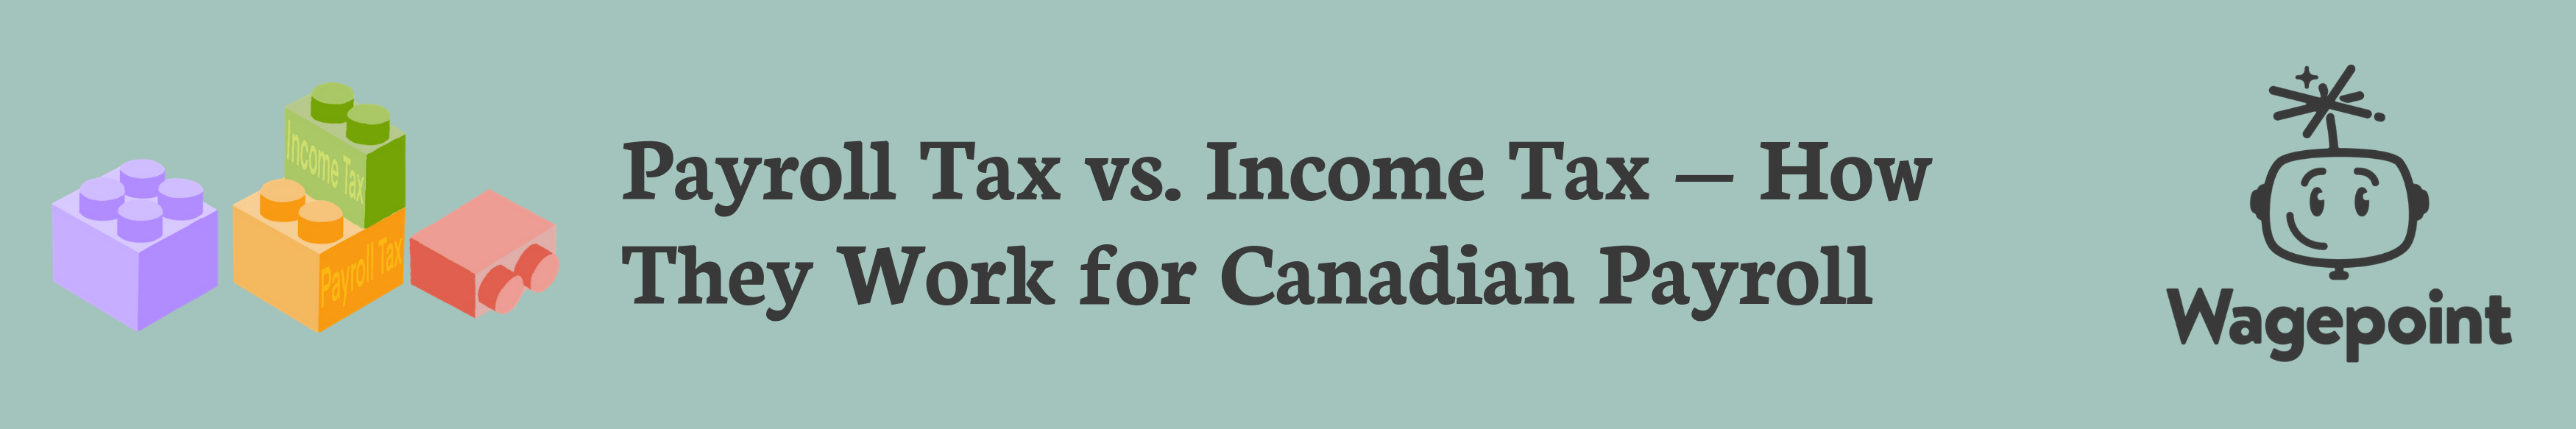 wagepoint commission canadian payroll banner